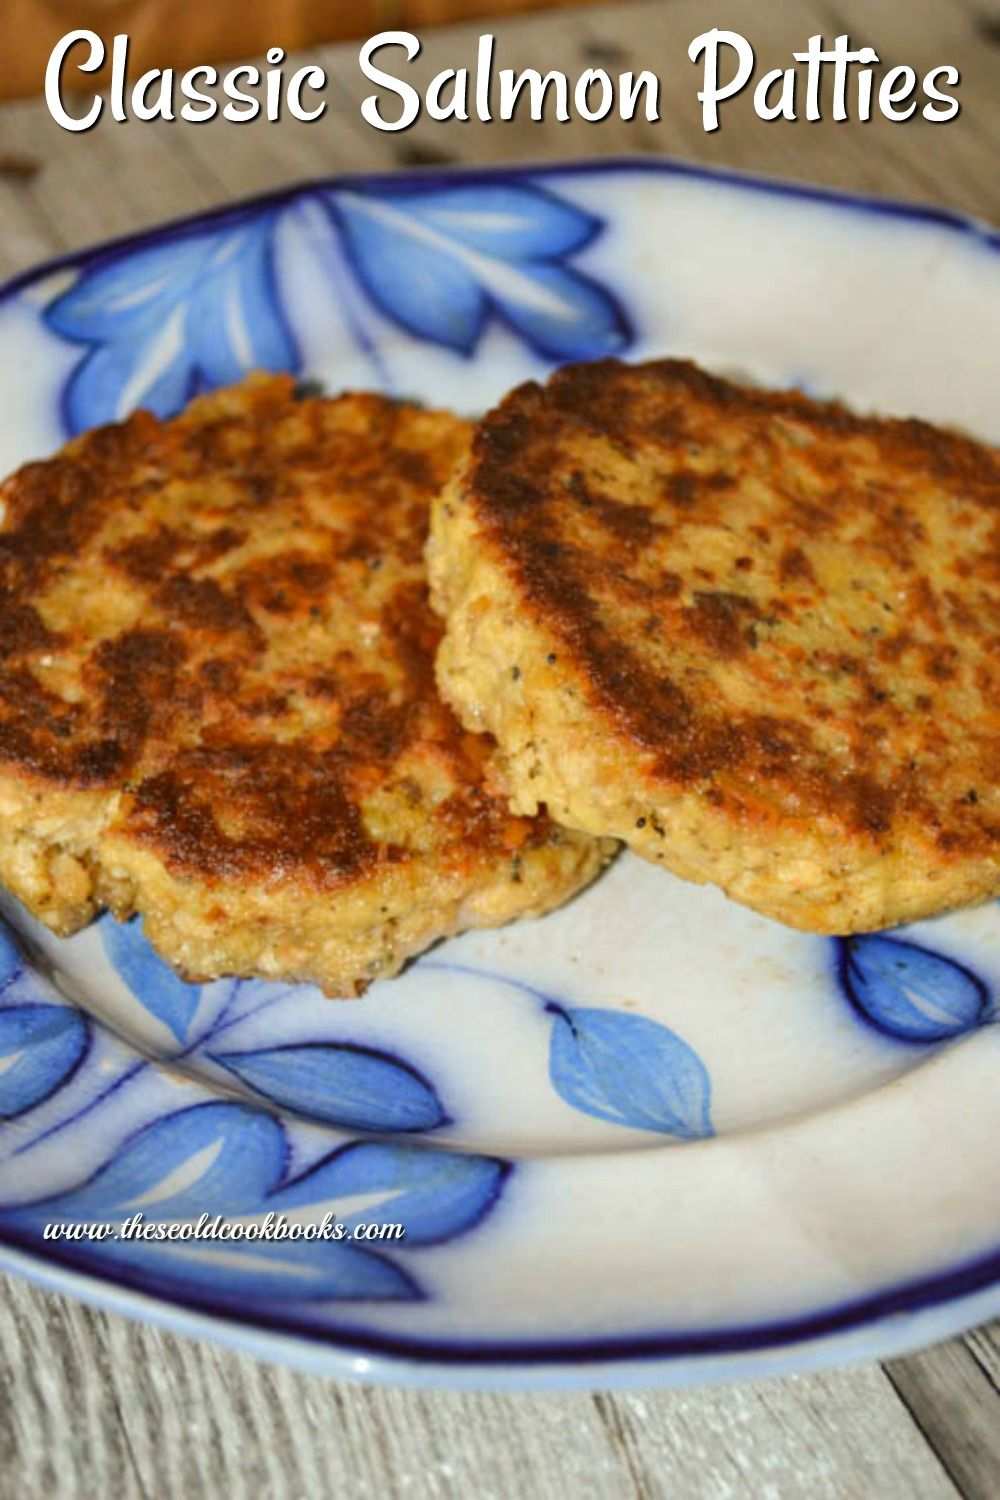 Classic Salmon Patties Recipe with Canned Salmon